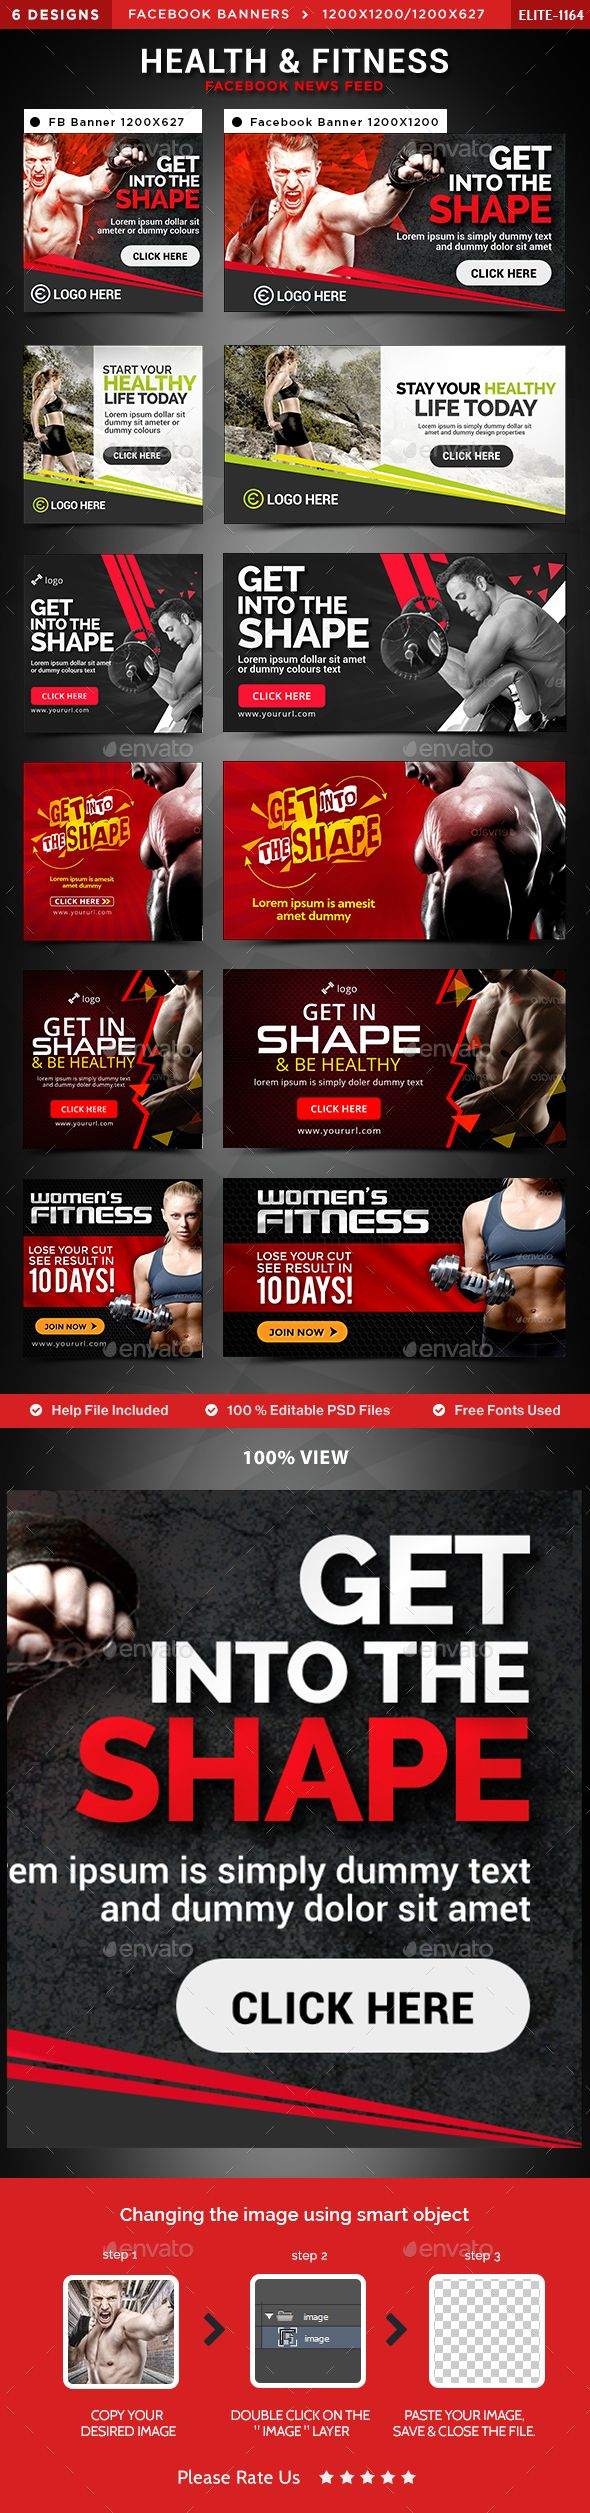 Health & Fitness Facebook Newsfeed Images - 6 Designs   Banners ...